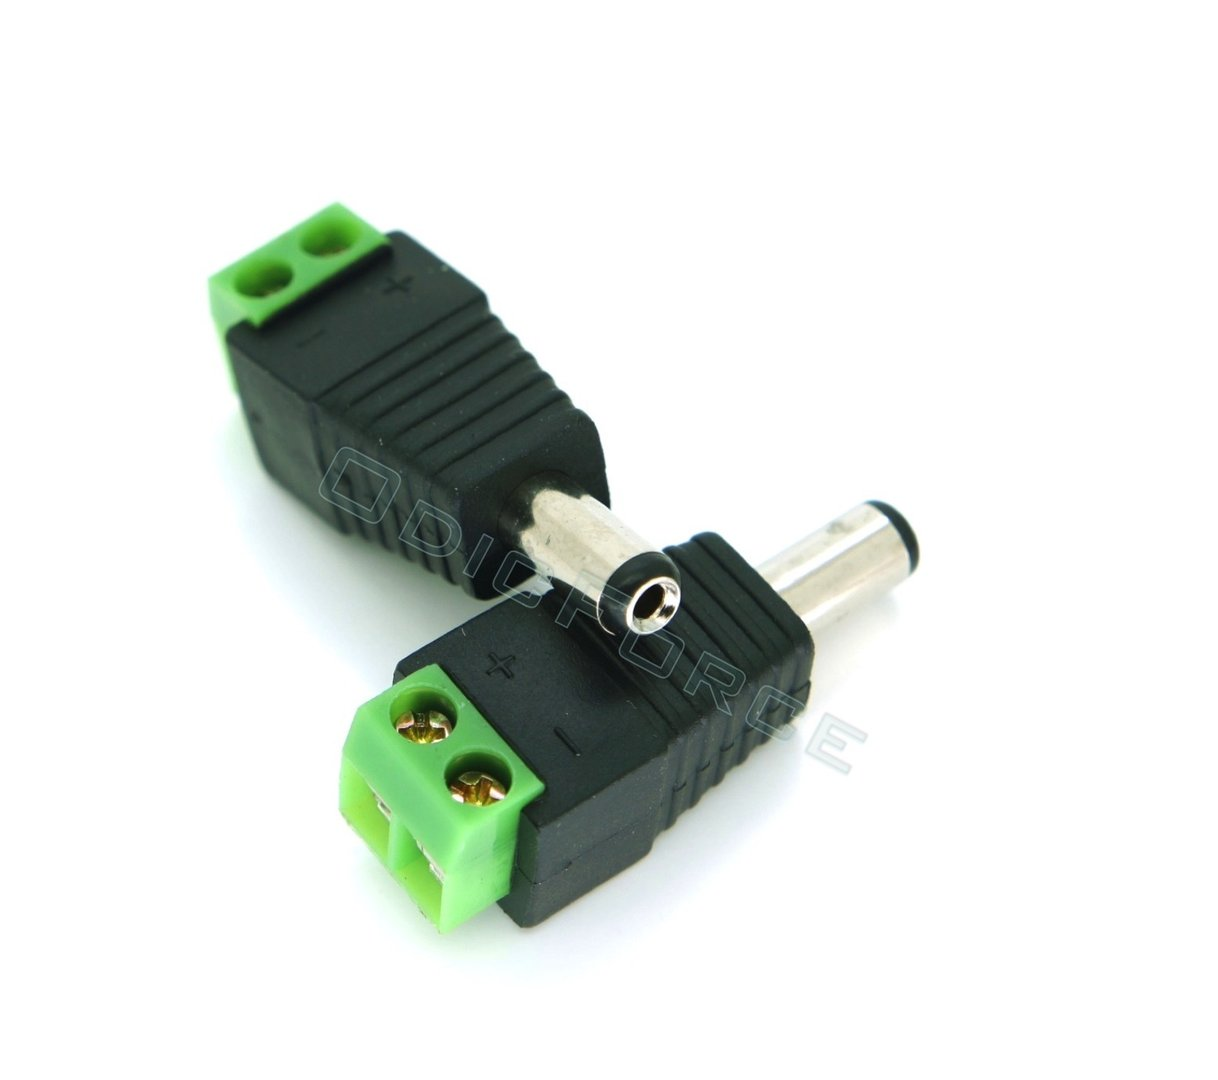 DC Adaptor (Plug) 2.1mm Hole 5.5mm Diameter